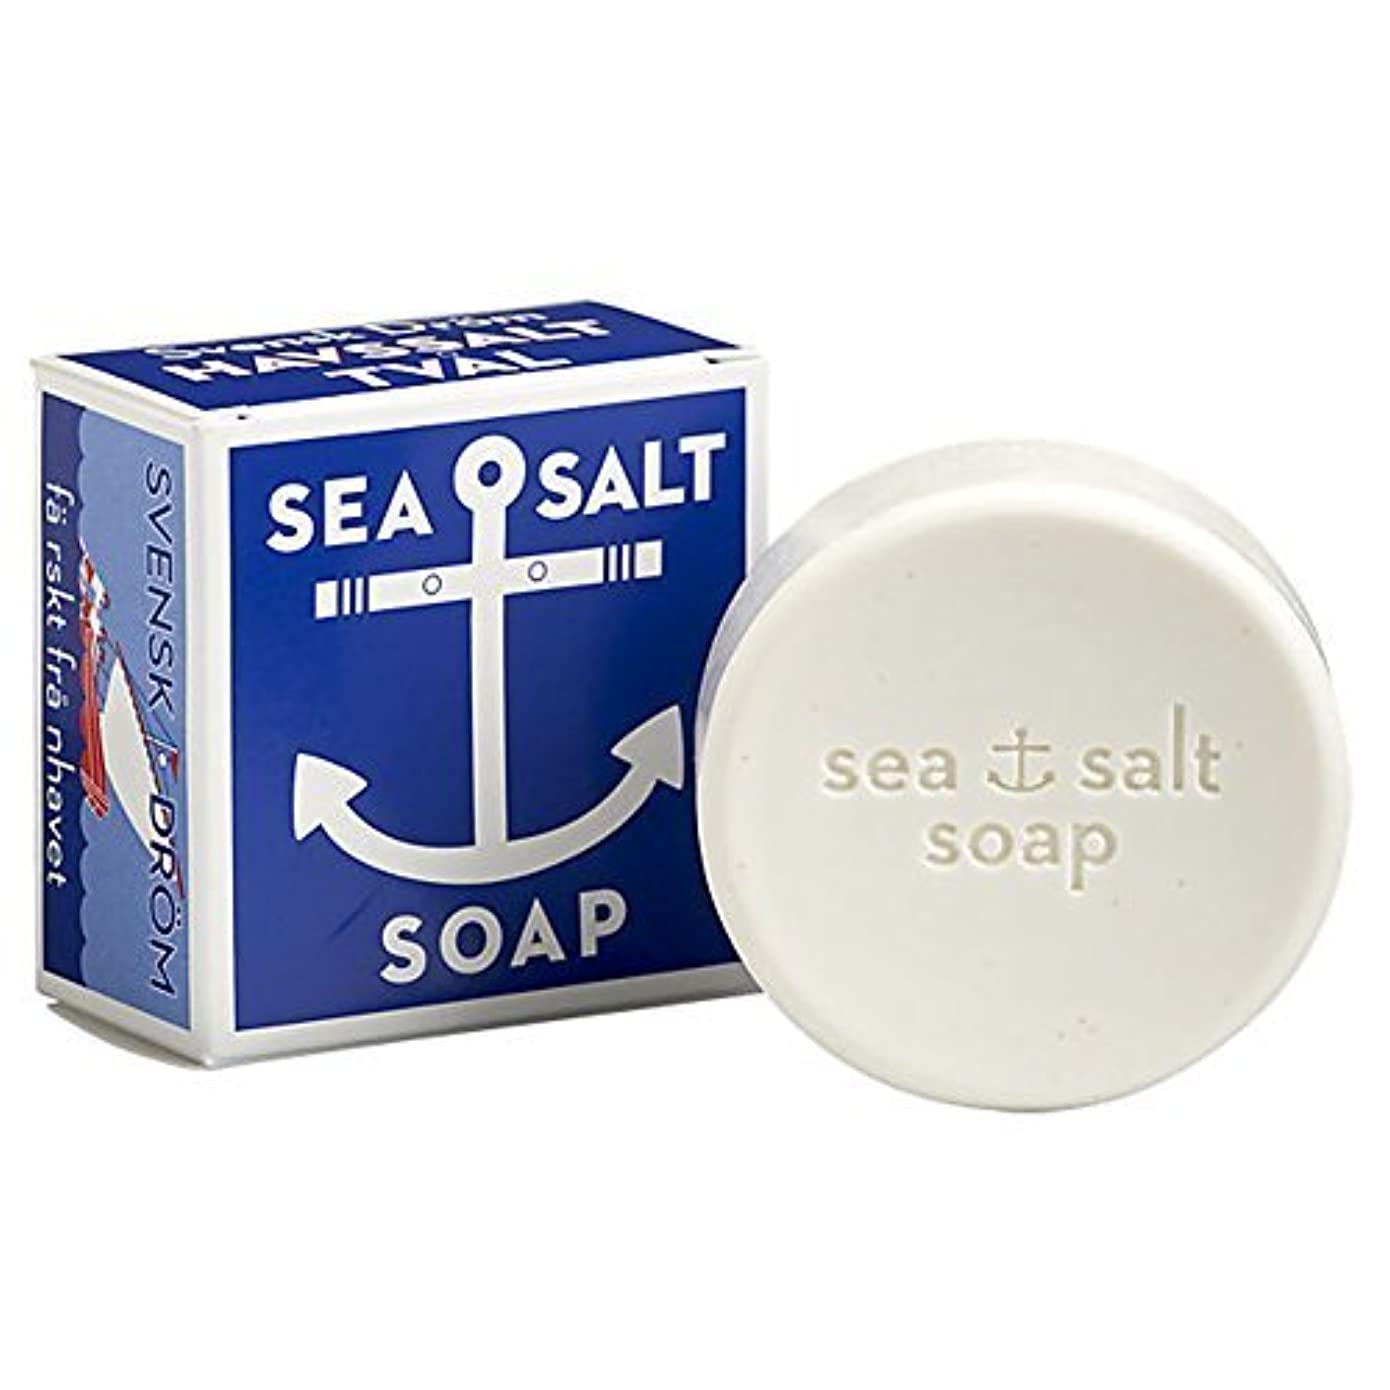 霧深いより平らな冷笑するSwedish Dream Sea Salt Invigorating Bath Soap - One 4.3 oz Bar by Swedish Dream [並行輸入品]